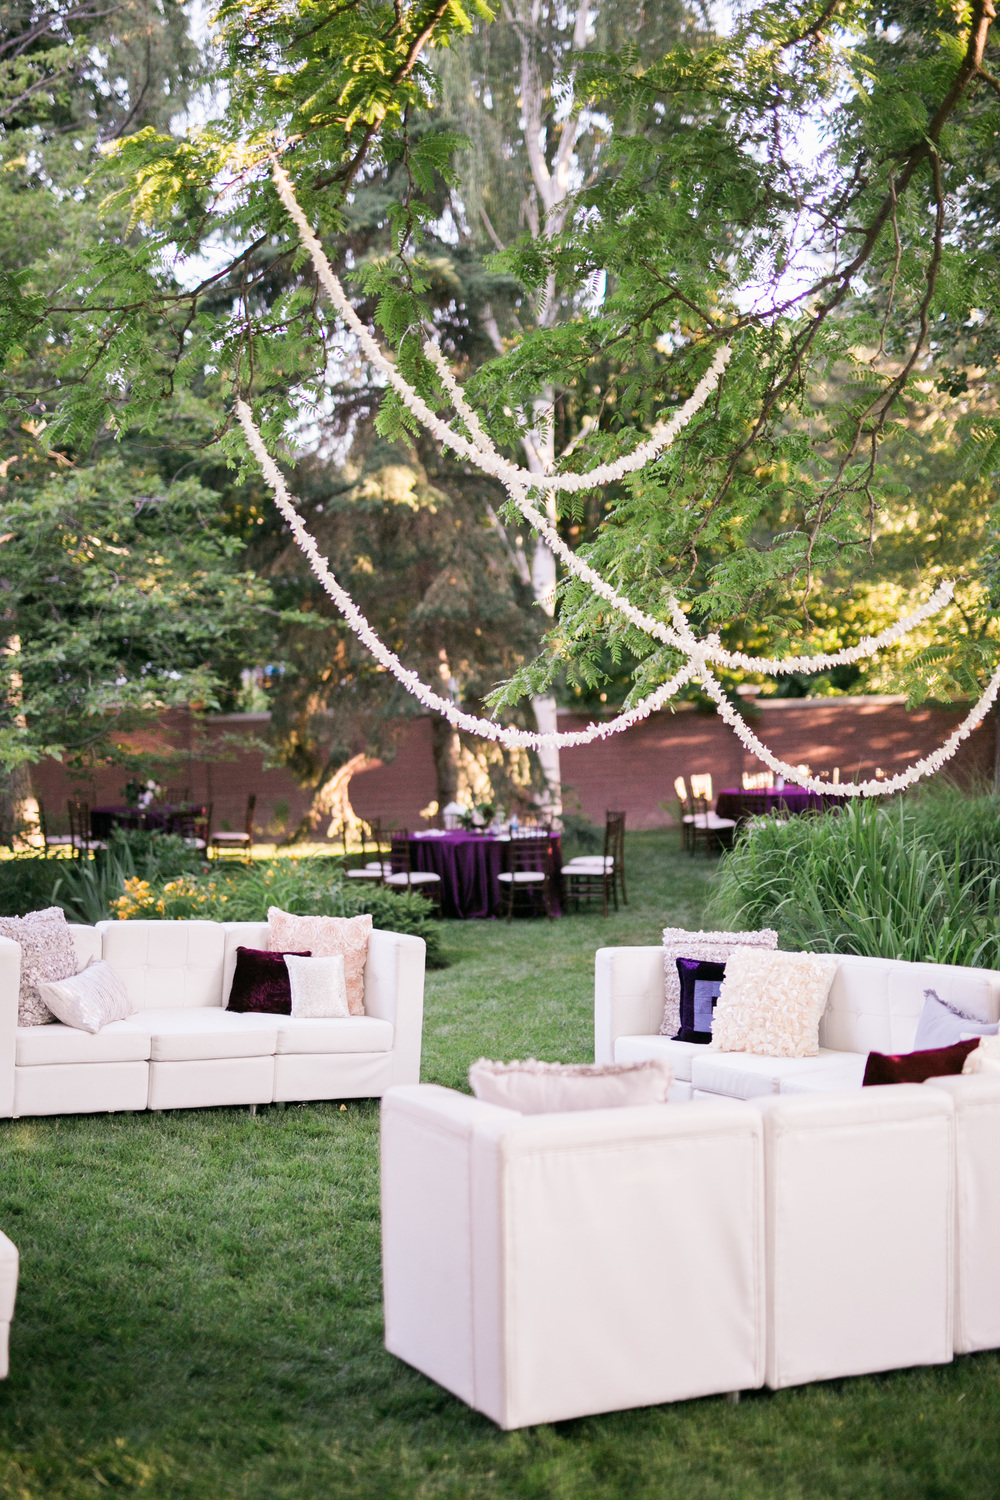 Backyard Wedding | Michelle Leo Events | Utah Event Planner and Designer | Jacque Lynn Photography